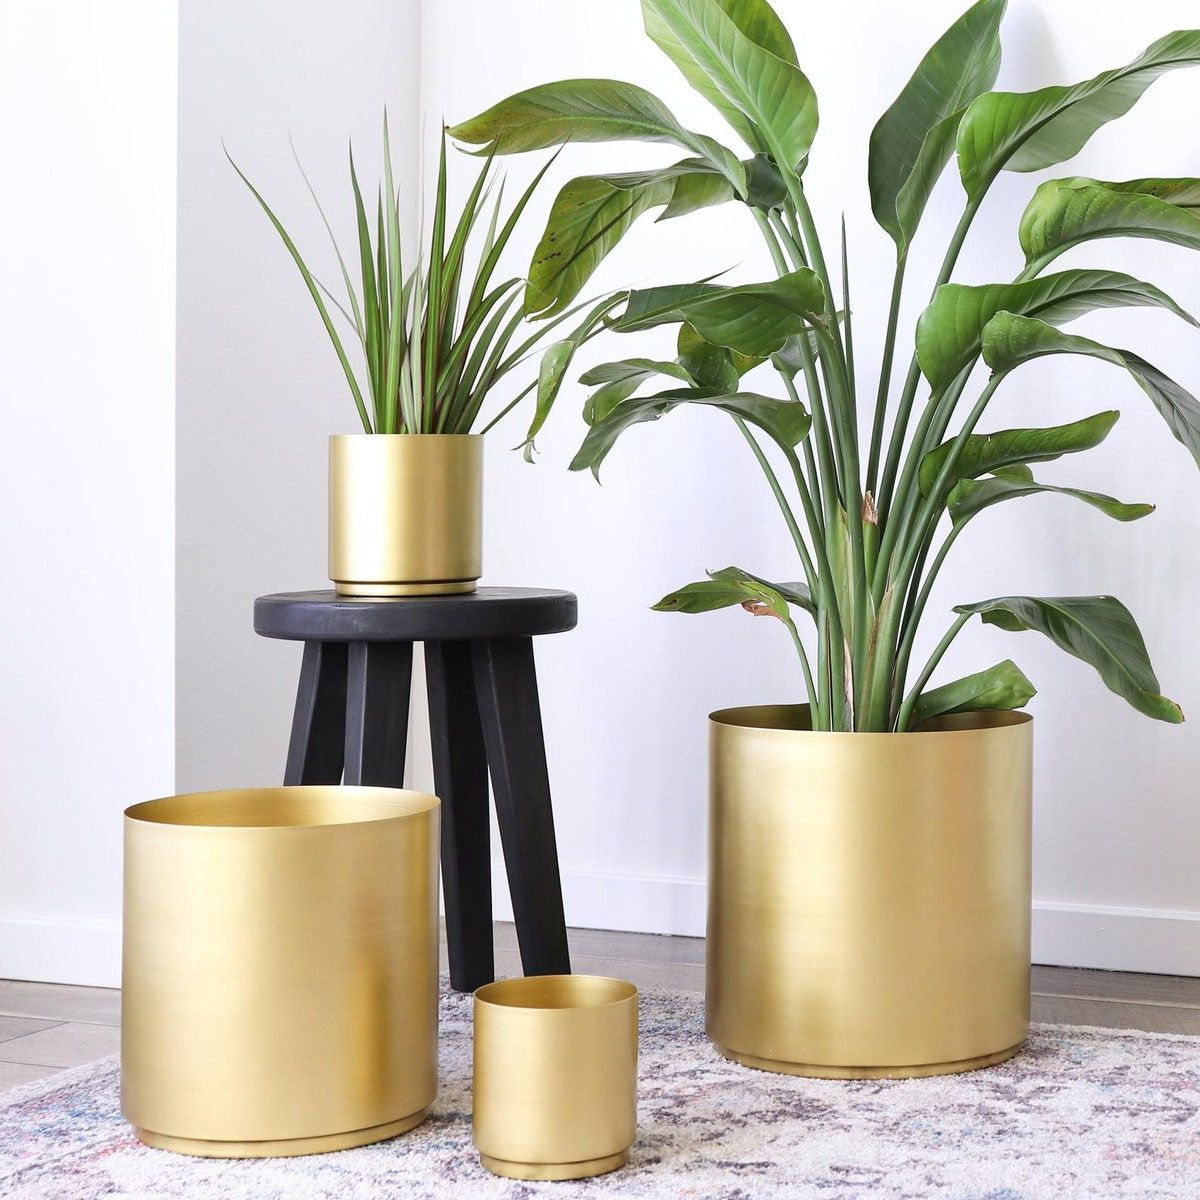 23 Affordable Indoor Planters We Love In 2020 Large Indoor Plants Indoor Plant Pots Large Indoor Planters